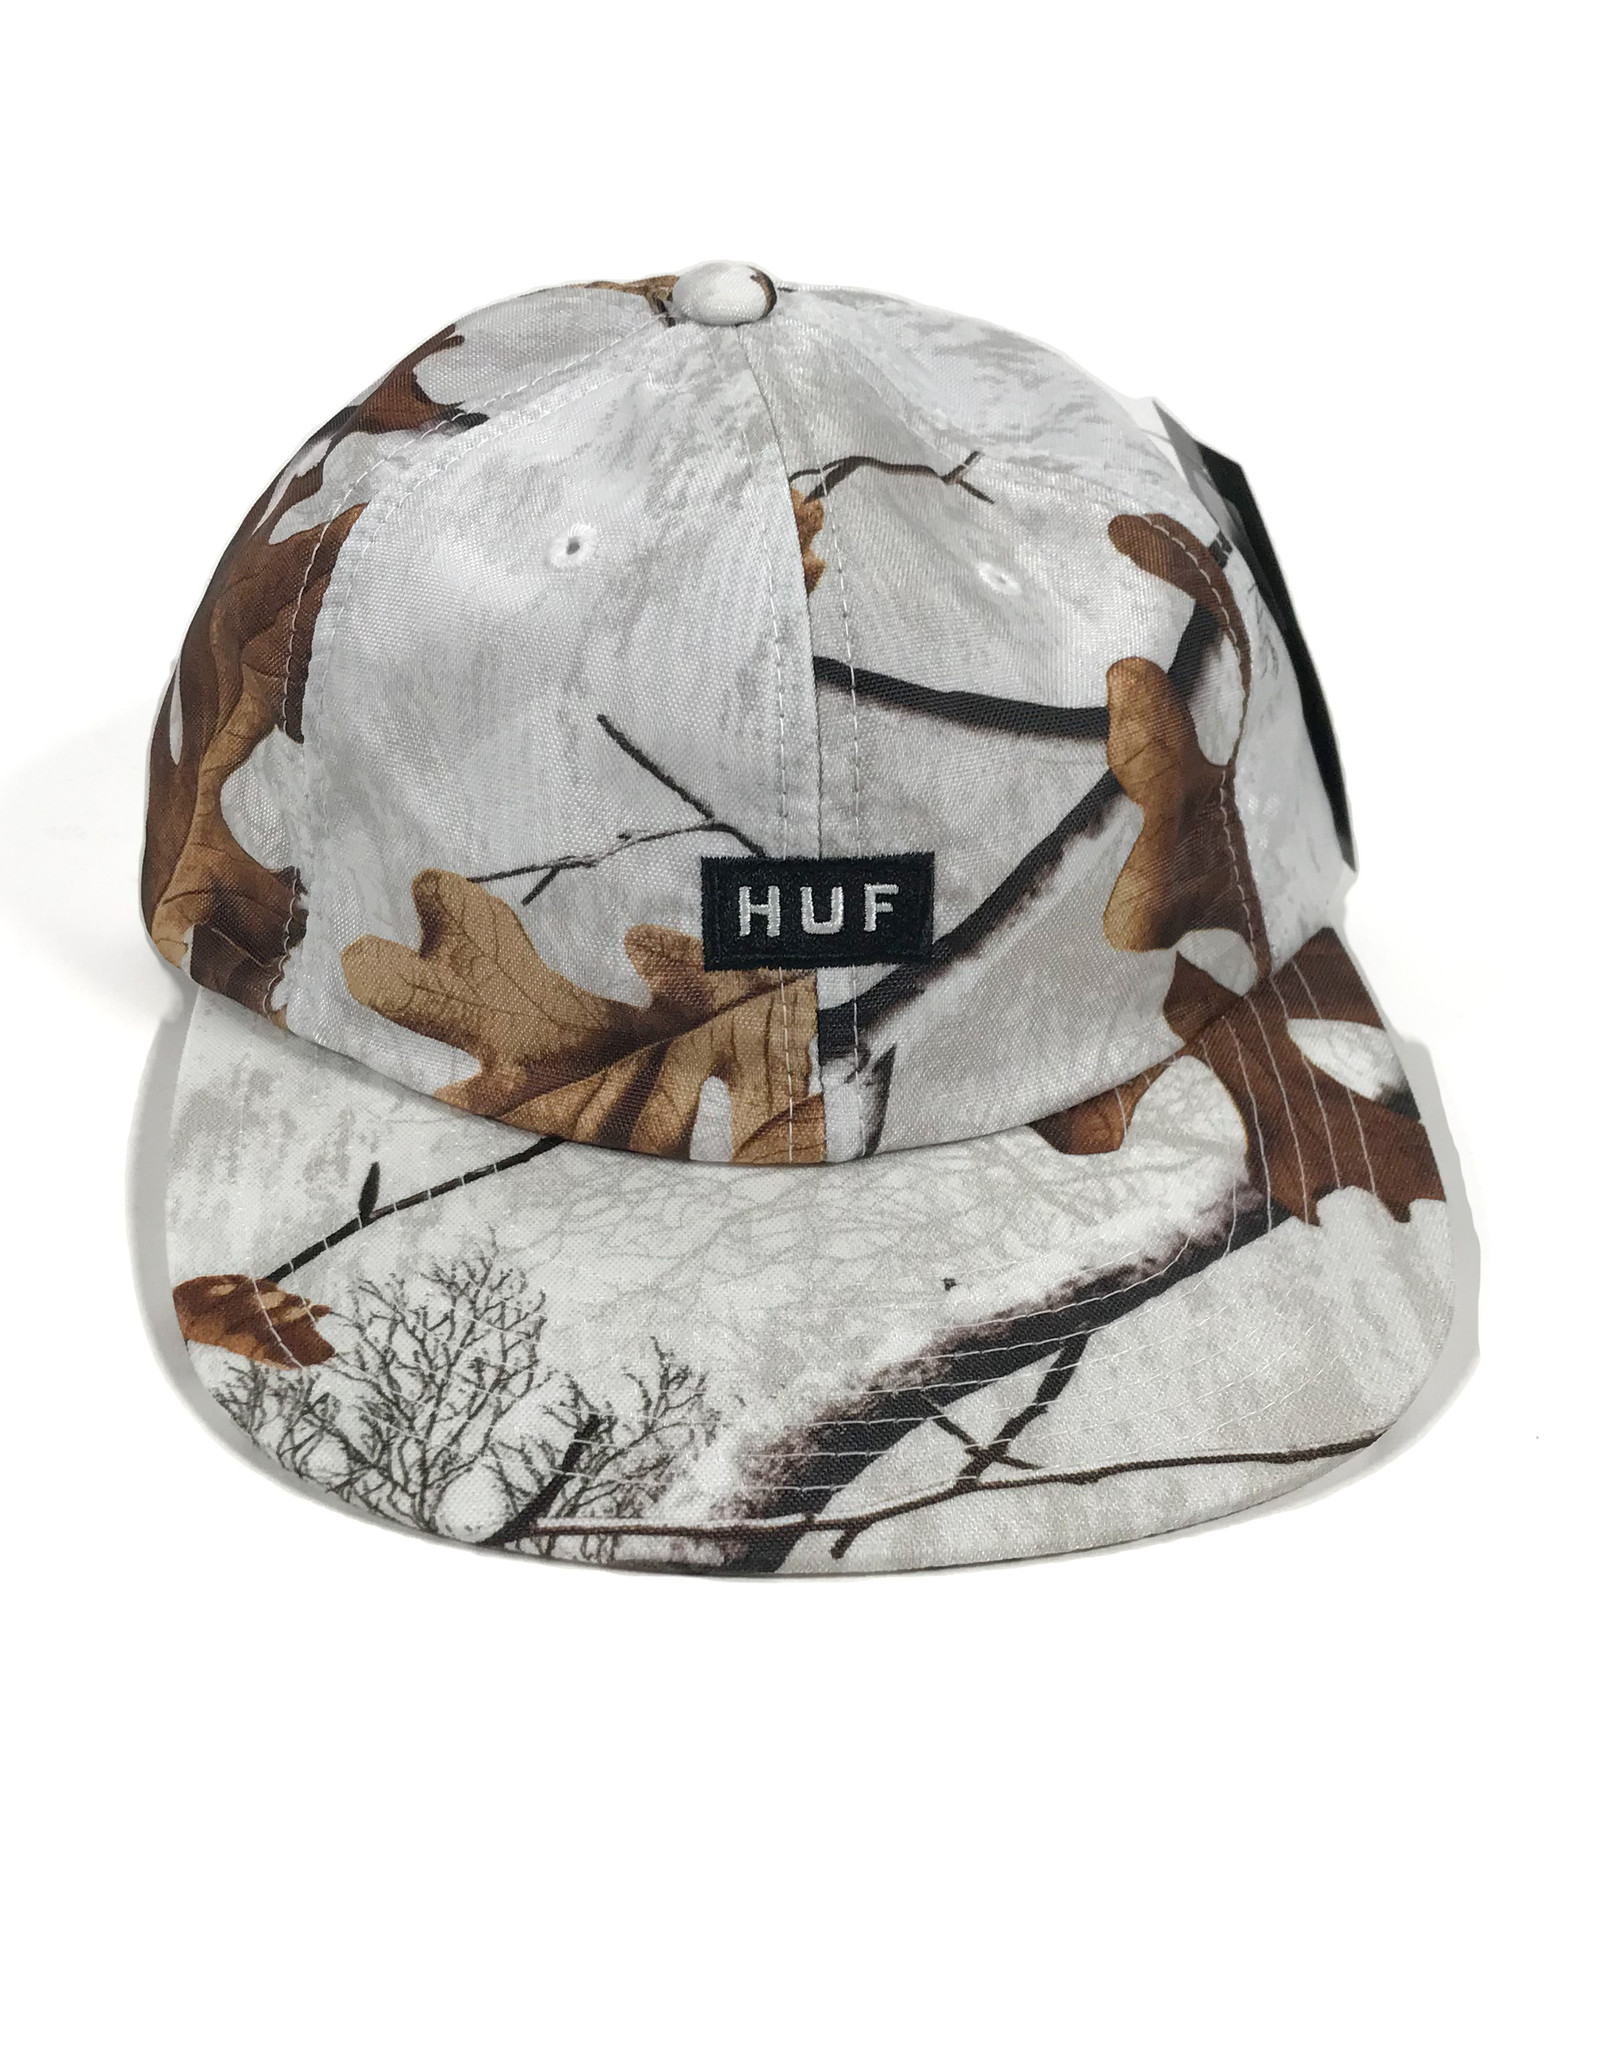 HUF REAL TREE 6 PANEL HAT - REAL TREE WHITE